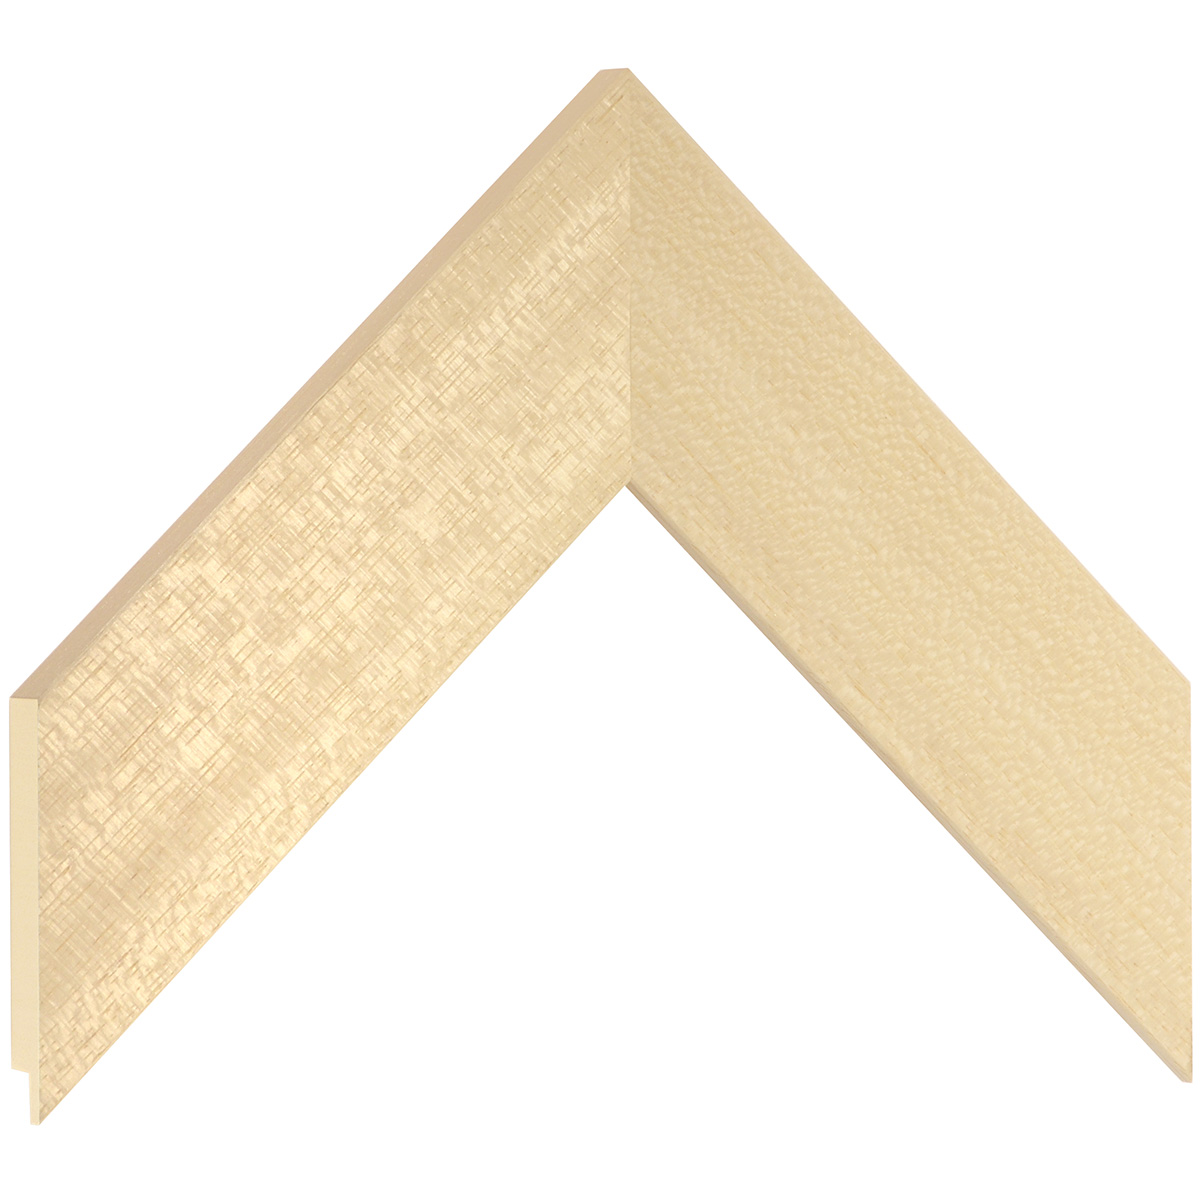 Moulding ayous, width 50mm, height 15mm, bare timber